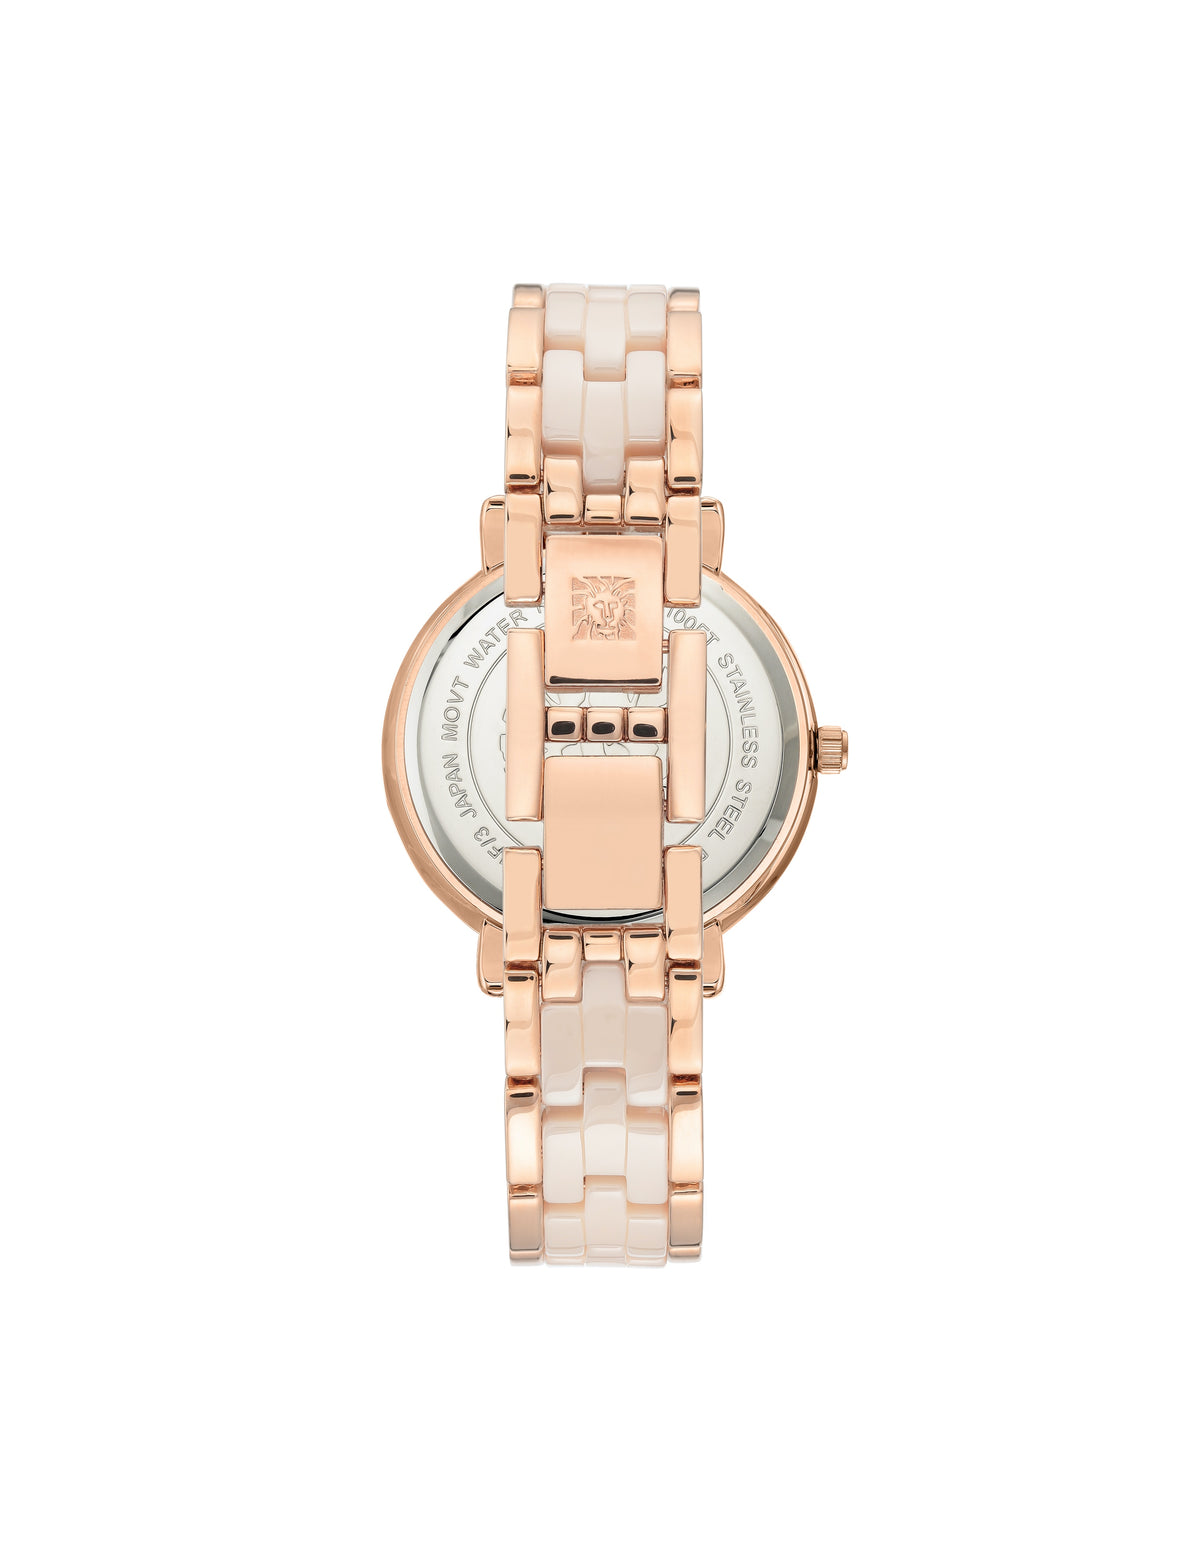 Ceramic Rose-Gold Tone Watch With Swarovski Crystals